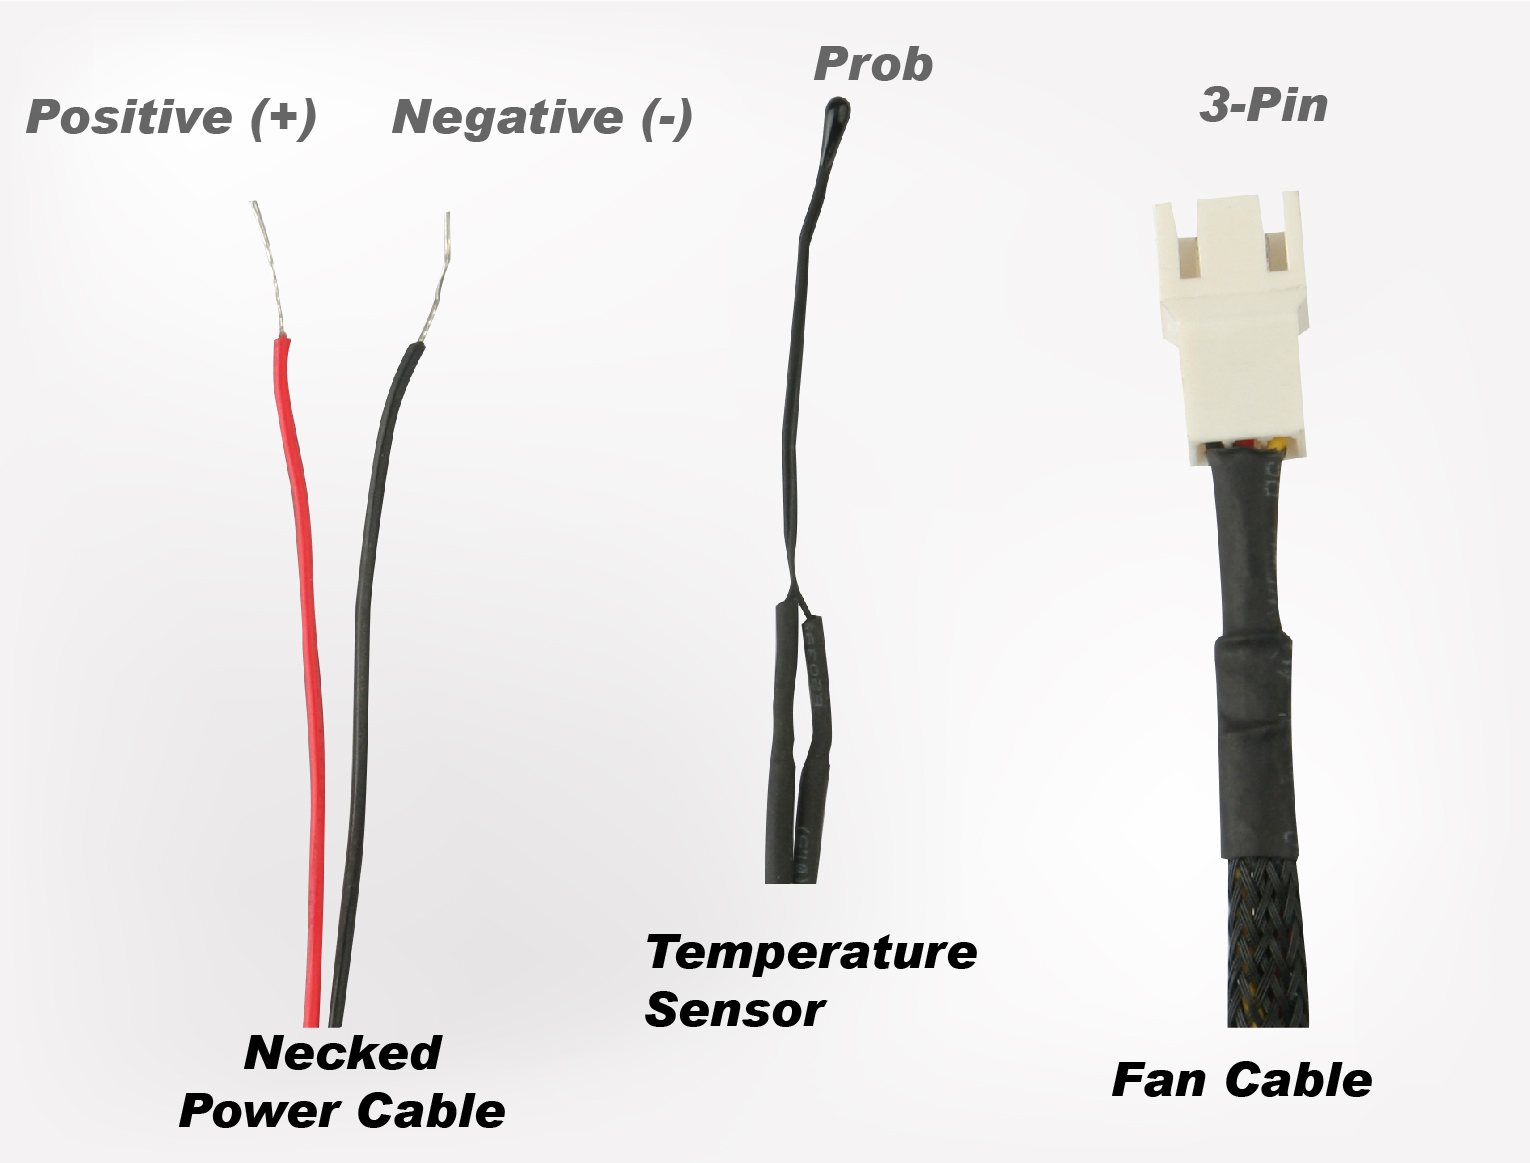 hight resolution of how to connect the power cable and fan cable